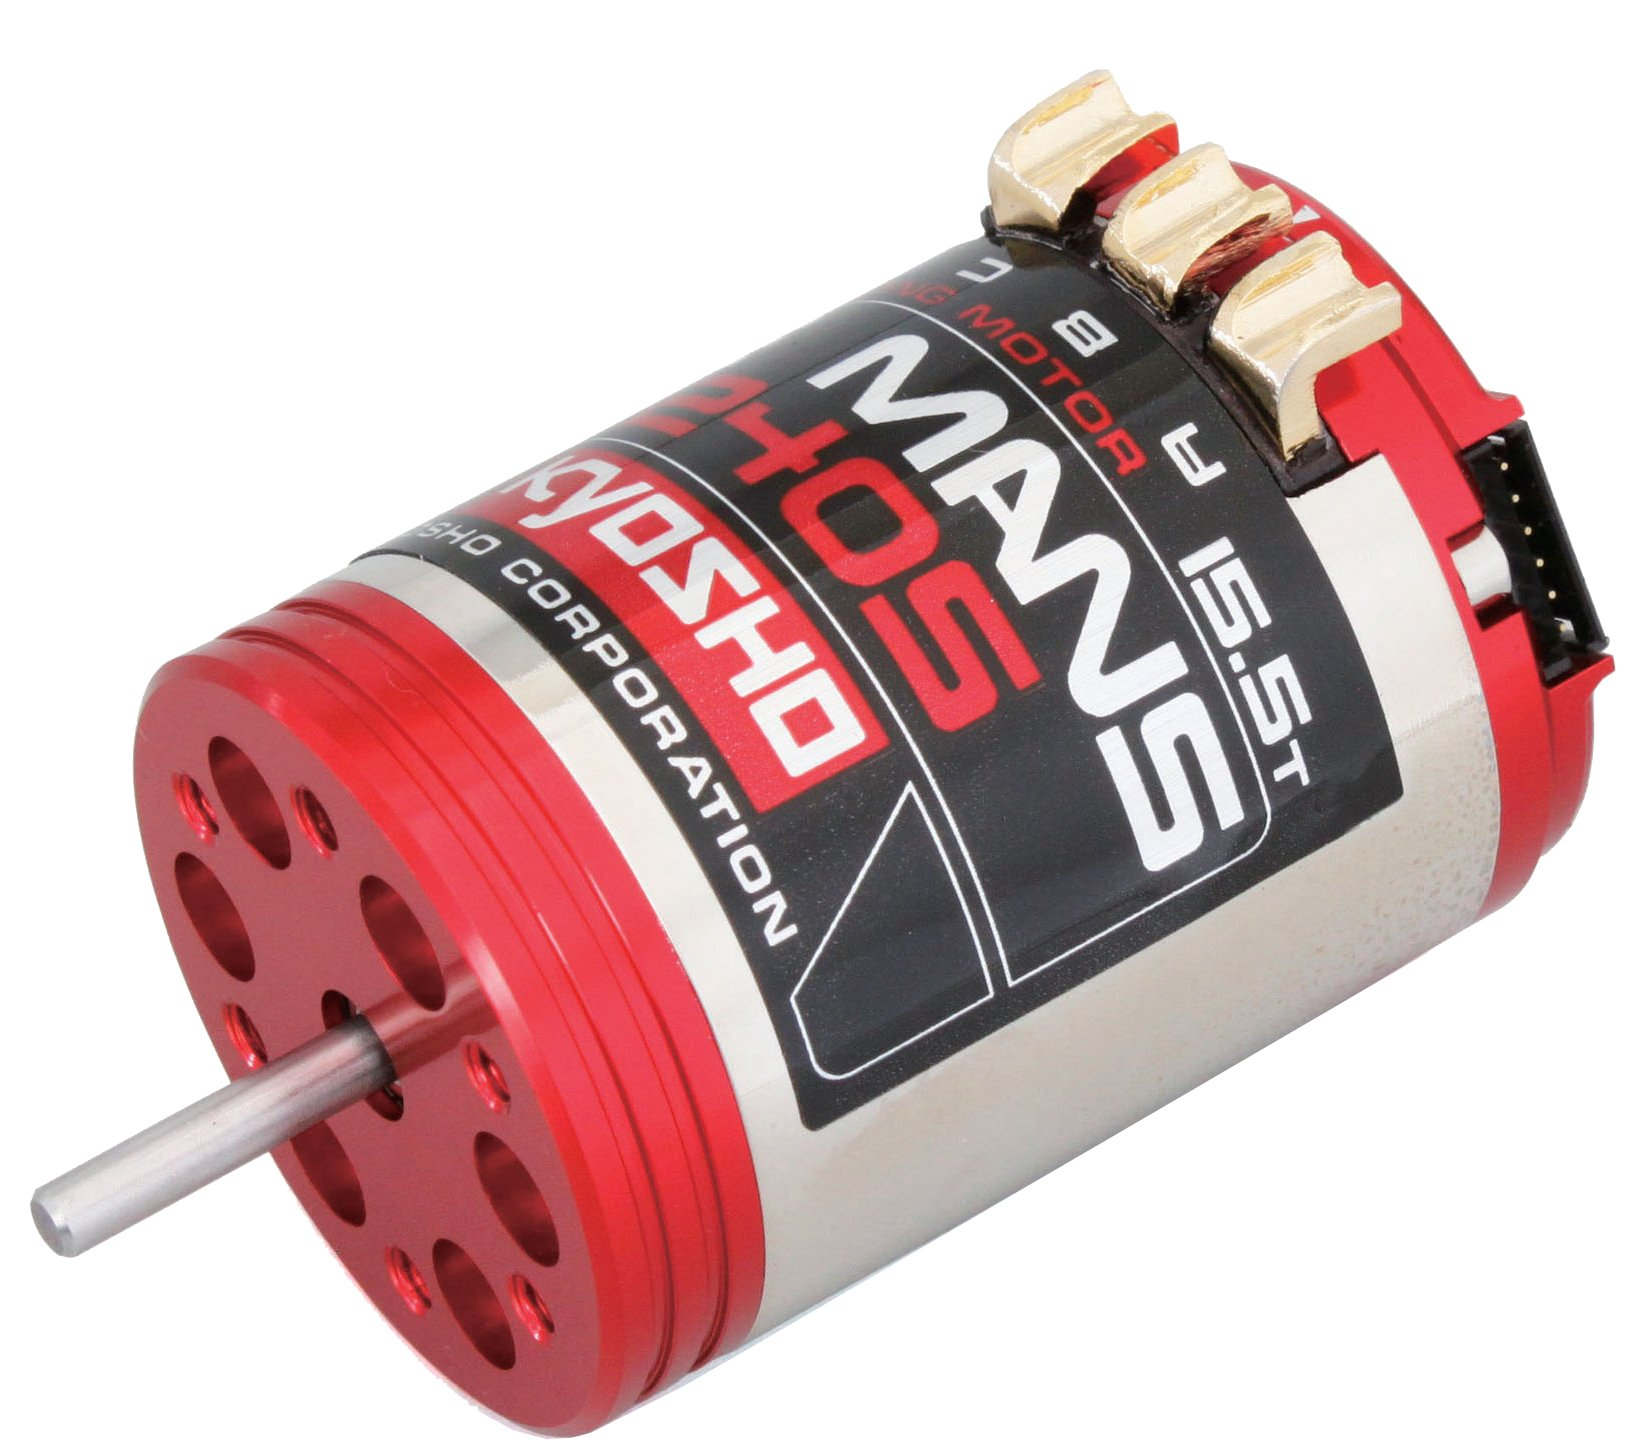 KYOSHO Le Mans 240S Brushless motor 15.5T/ For 4WD 37032